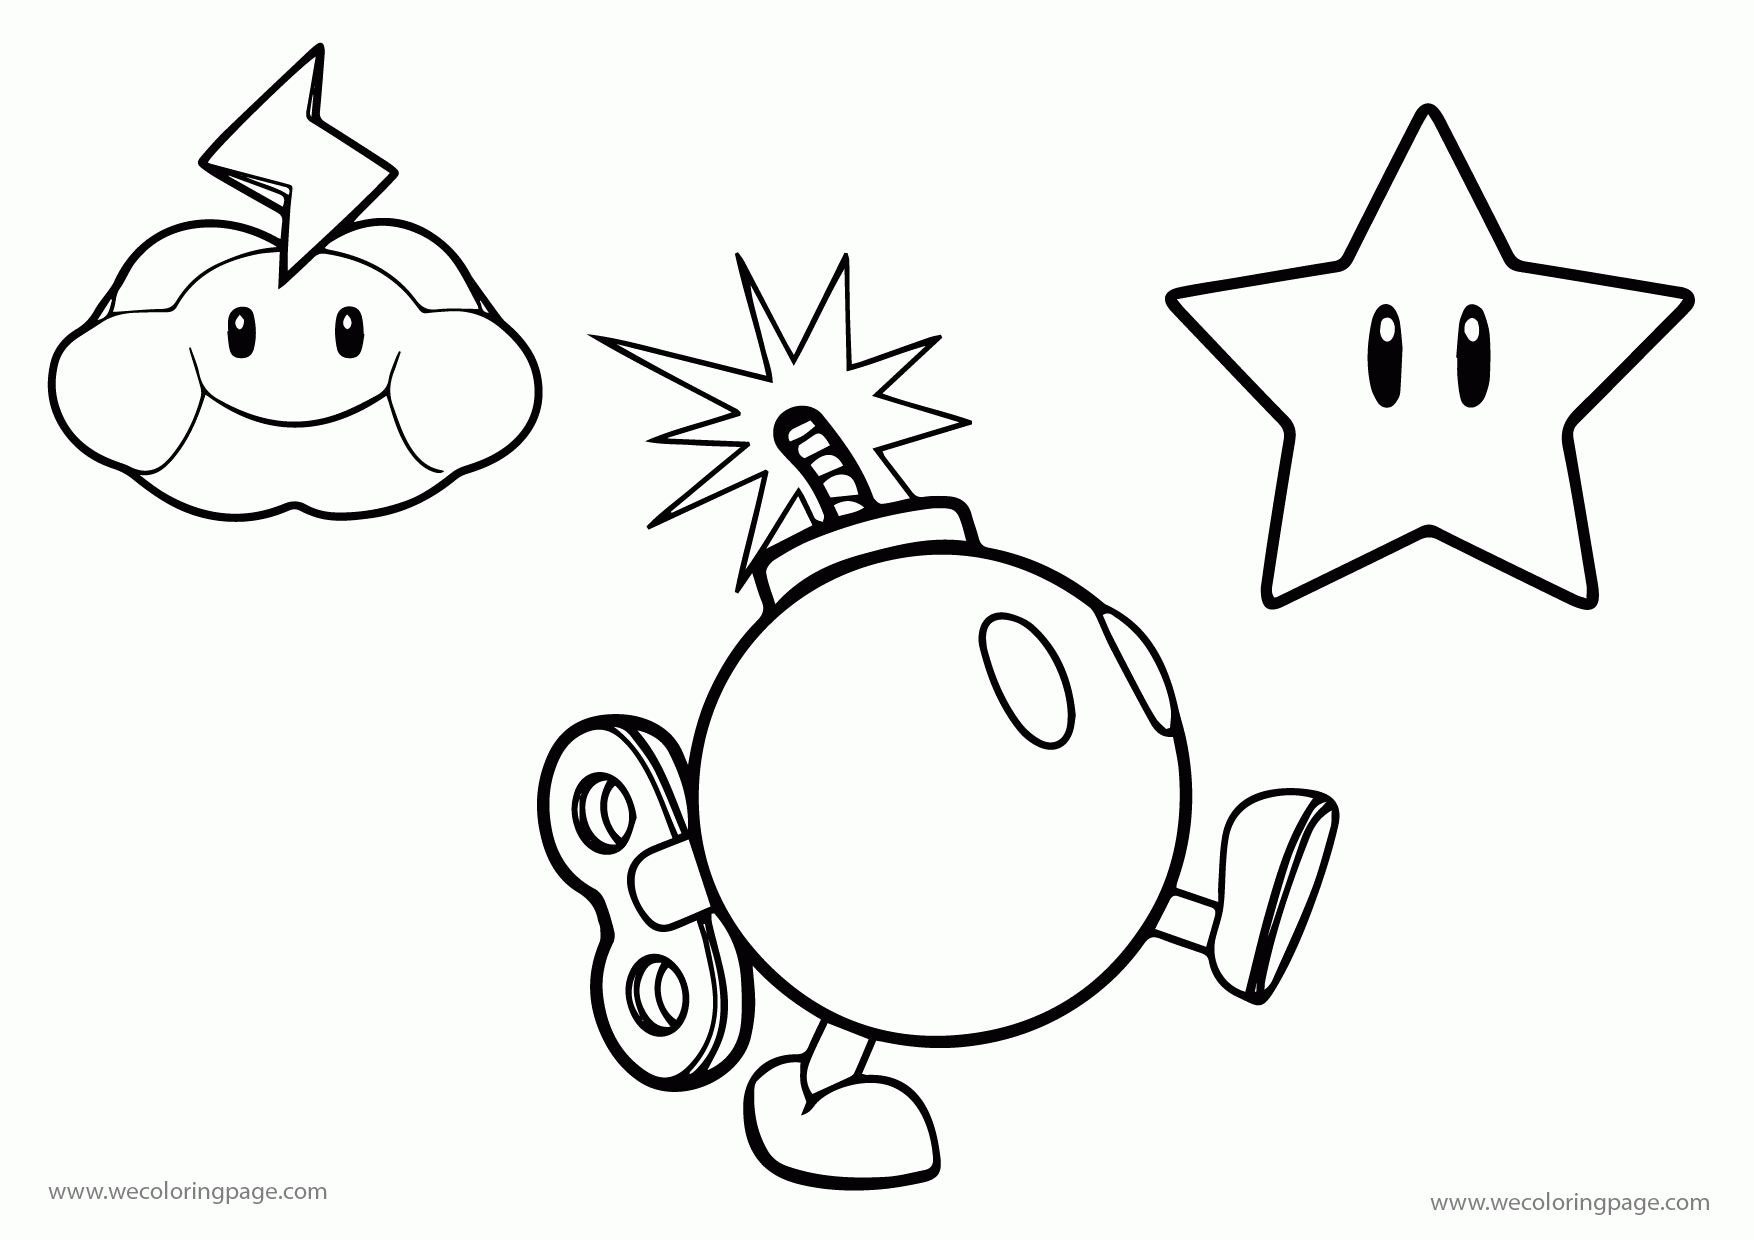 mario coloring pages - all mario character coloring pages